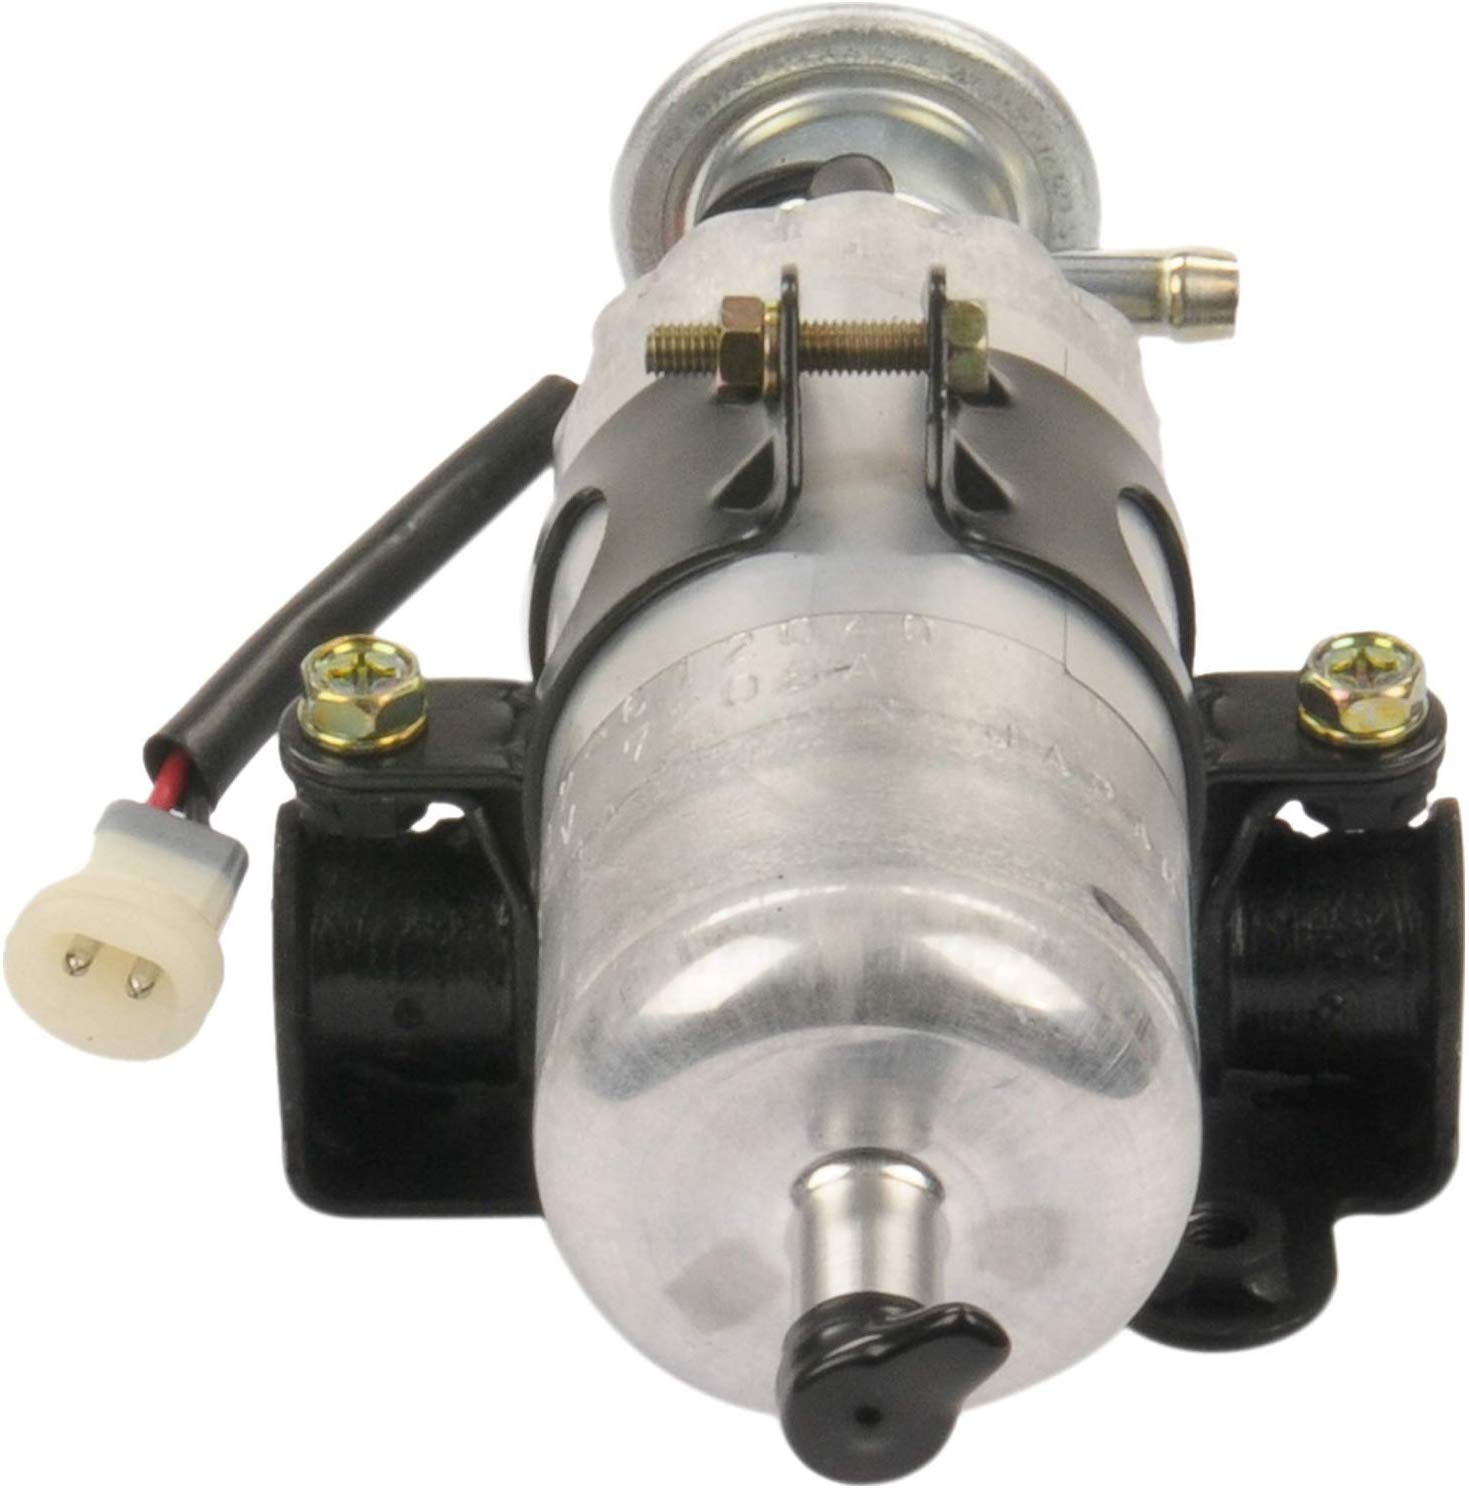 New Fuel Pump for Nissan 280Z 1975 to 1991